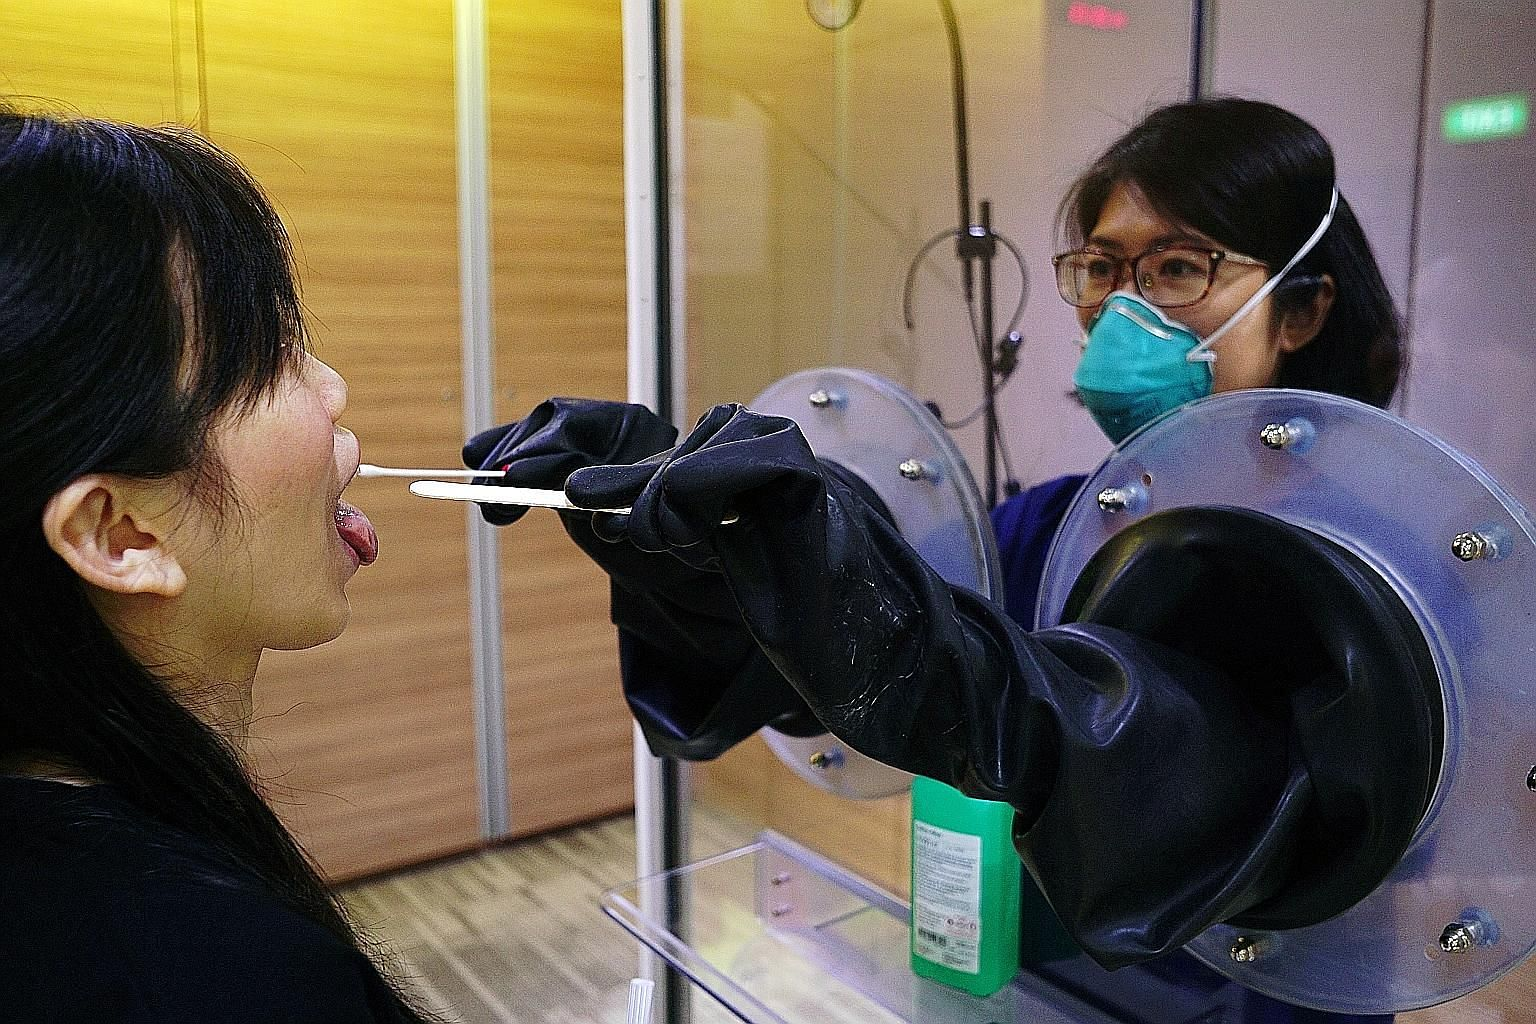 Throat swabs being done with SG Safe (left), a transparent booth system, and SG Shield, which gives healthcare workers added protection. PHOTOS: SGH